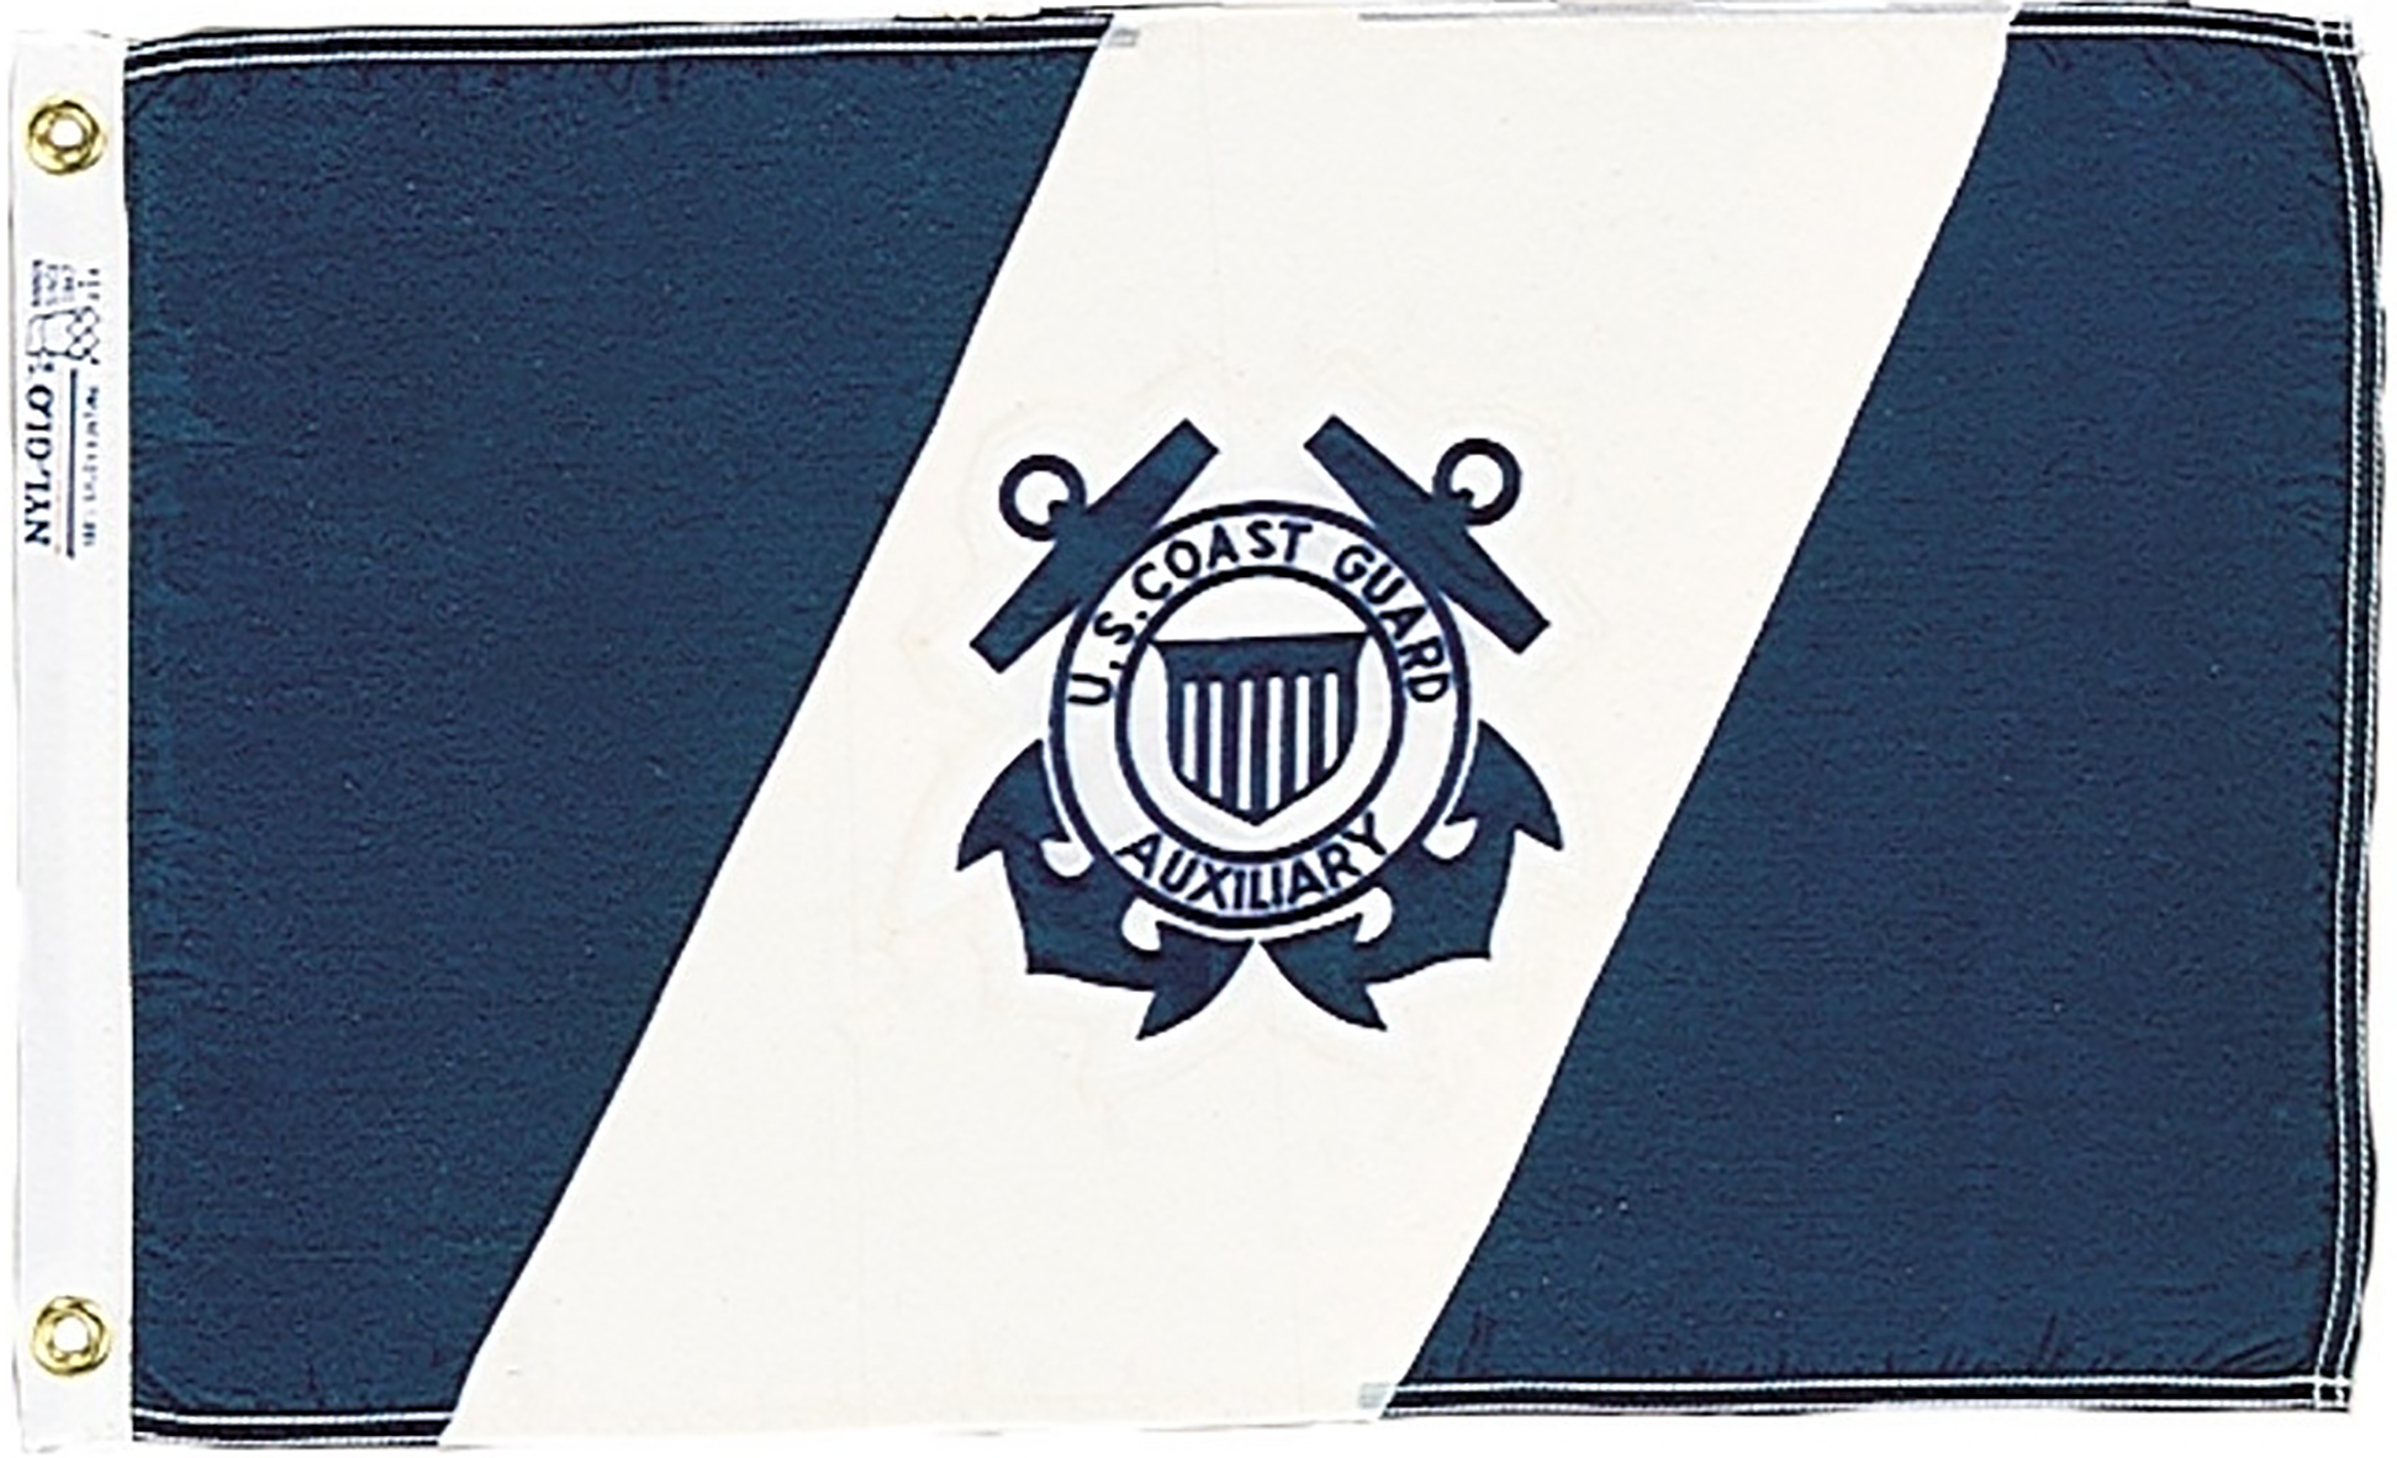 US Coast Guard Auxiliary Flags